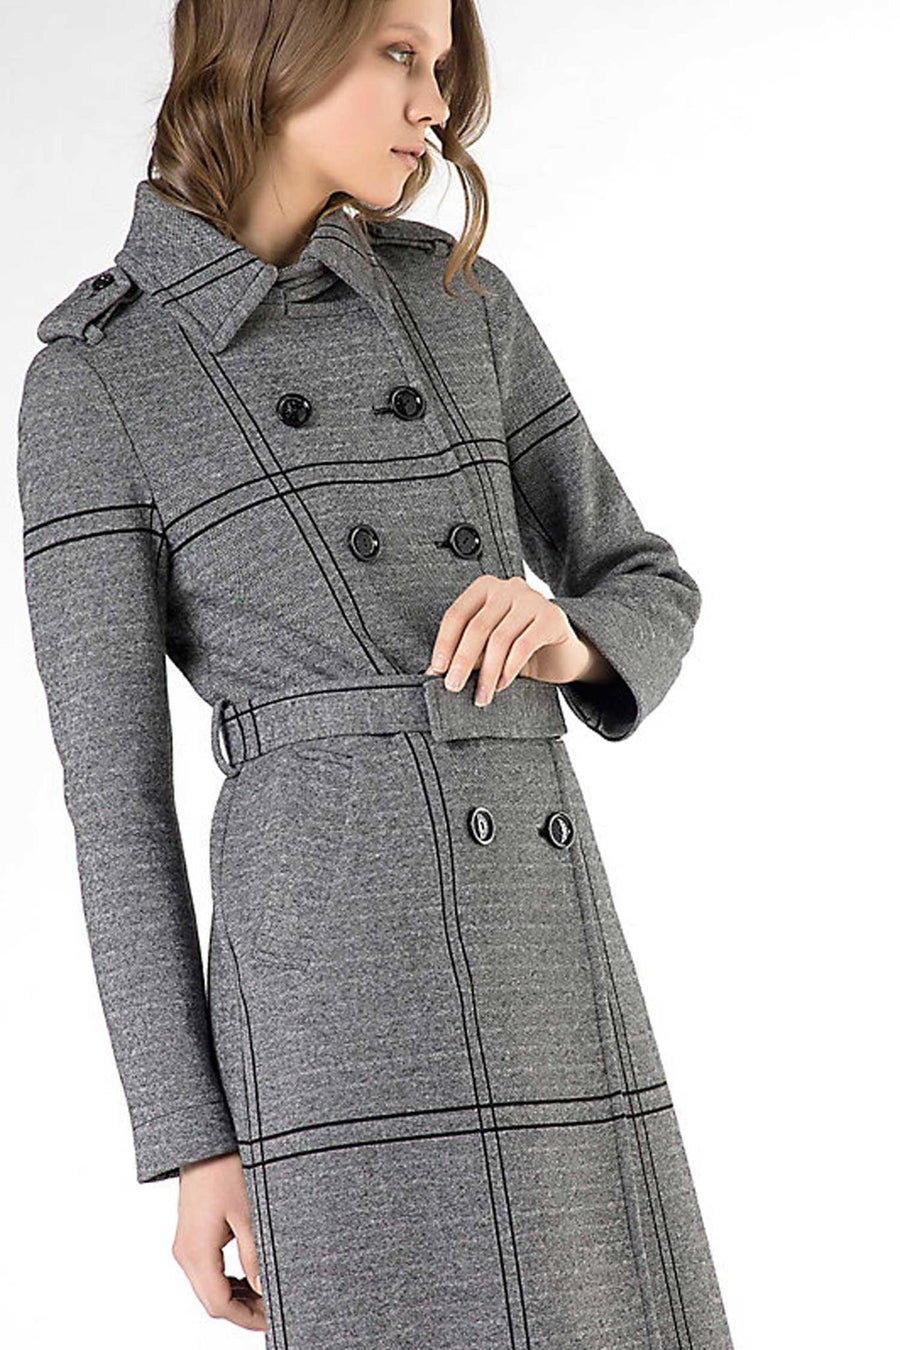 Trench Coat In Heavy Cotton and Wool Blend Jersey by Patrizia Pepe Frockaholics.com